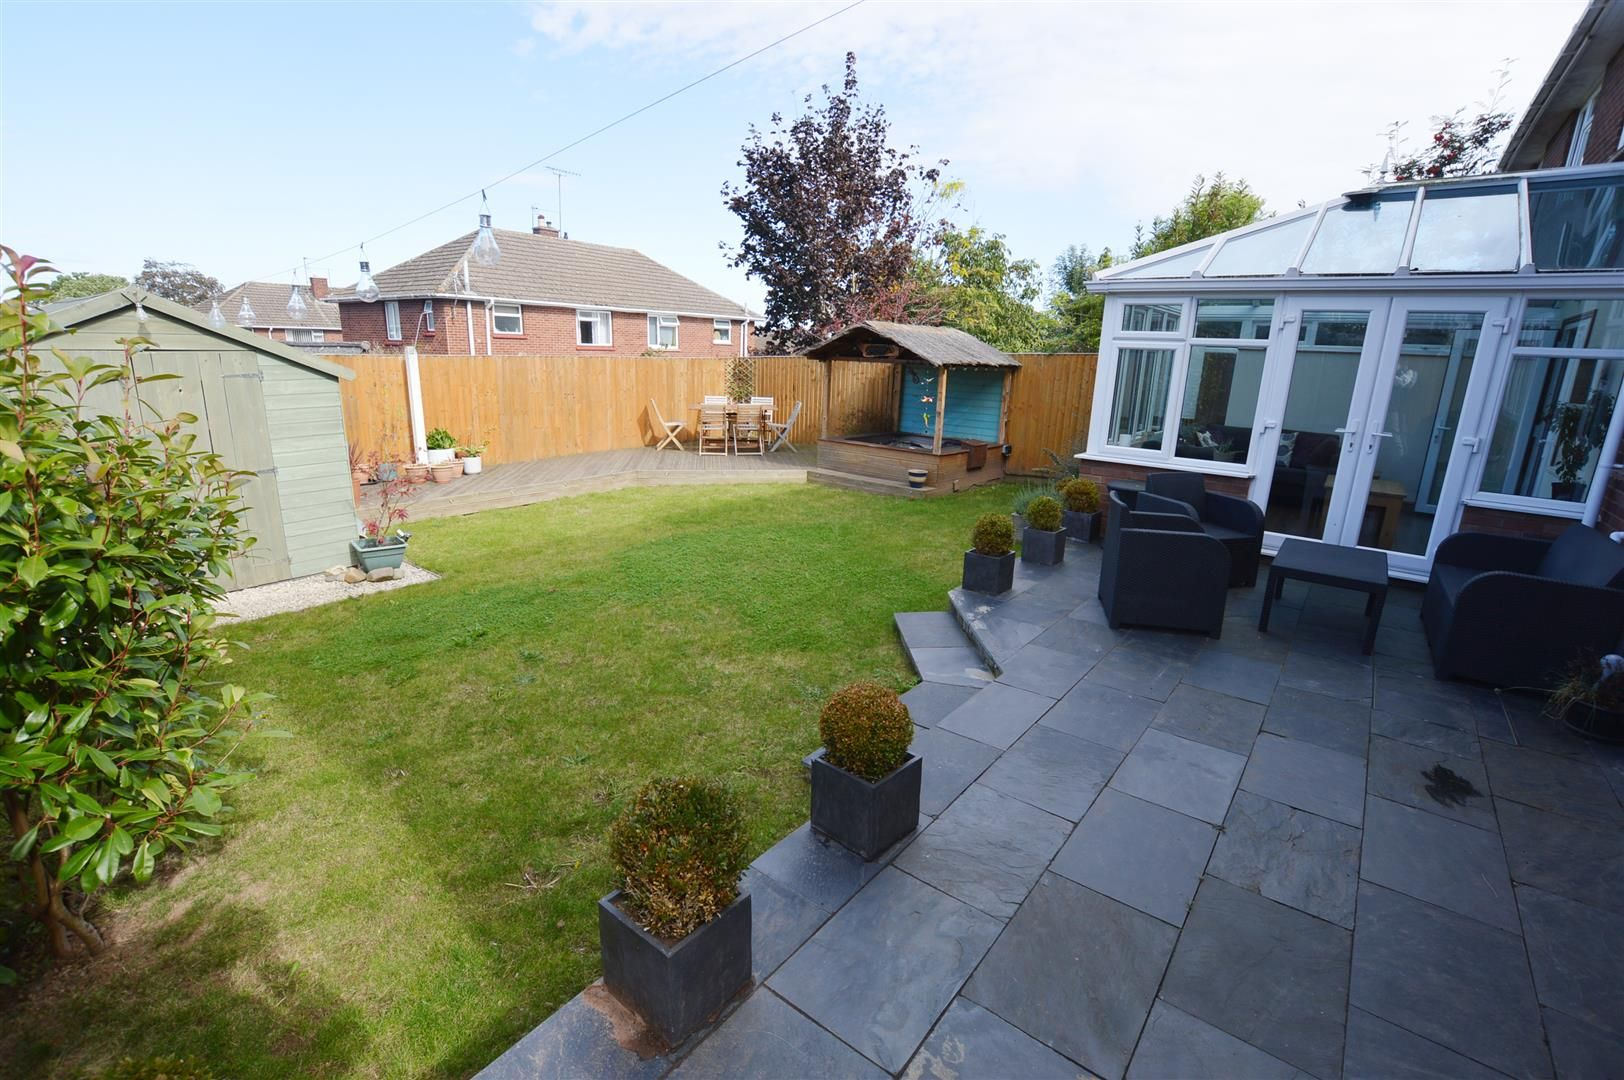 4 bed semi-detached for sale in Hereford  - Property Image 10